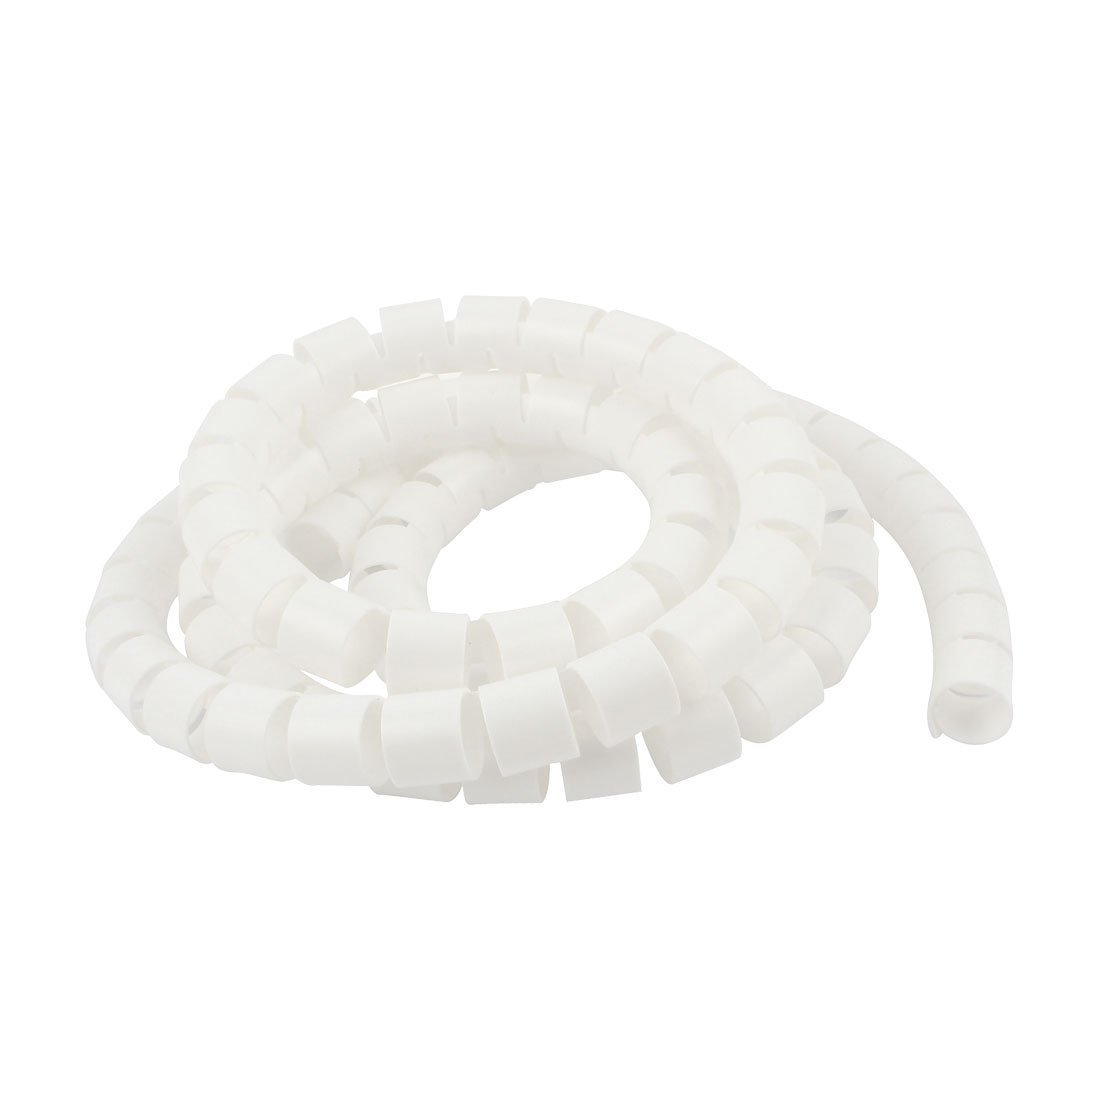 Wire Wrap Tube - SODIAL(R) Spiral Tube Cable Wire Wrap Computer Cord Management 25mmx2M White